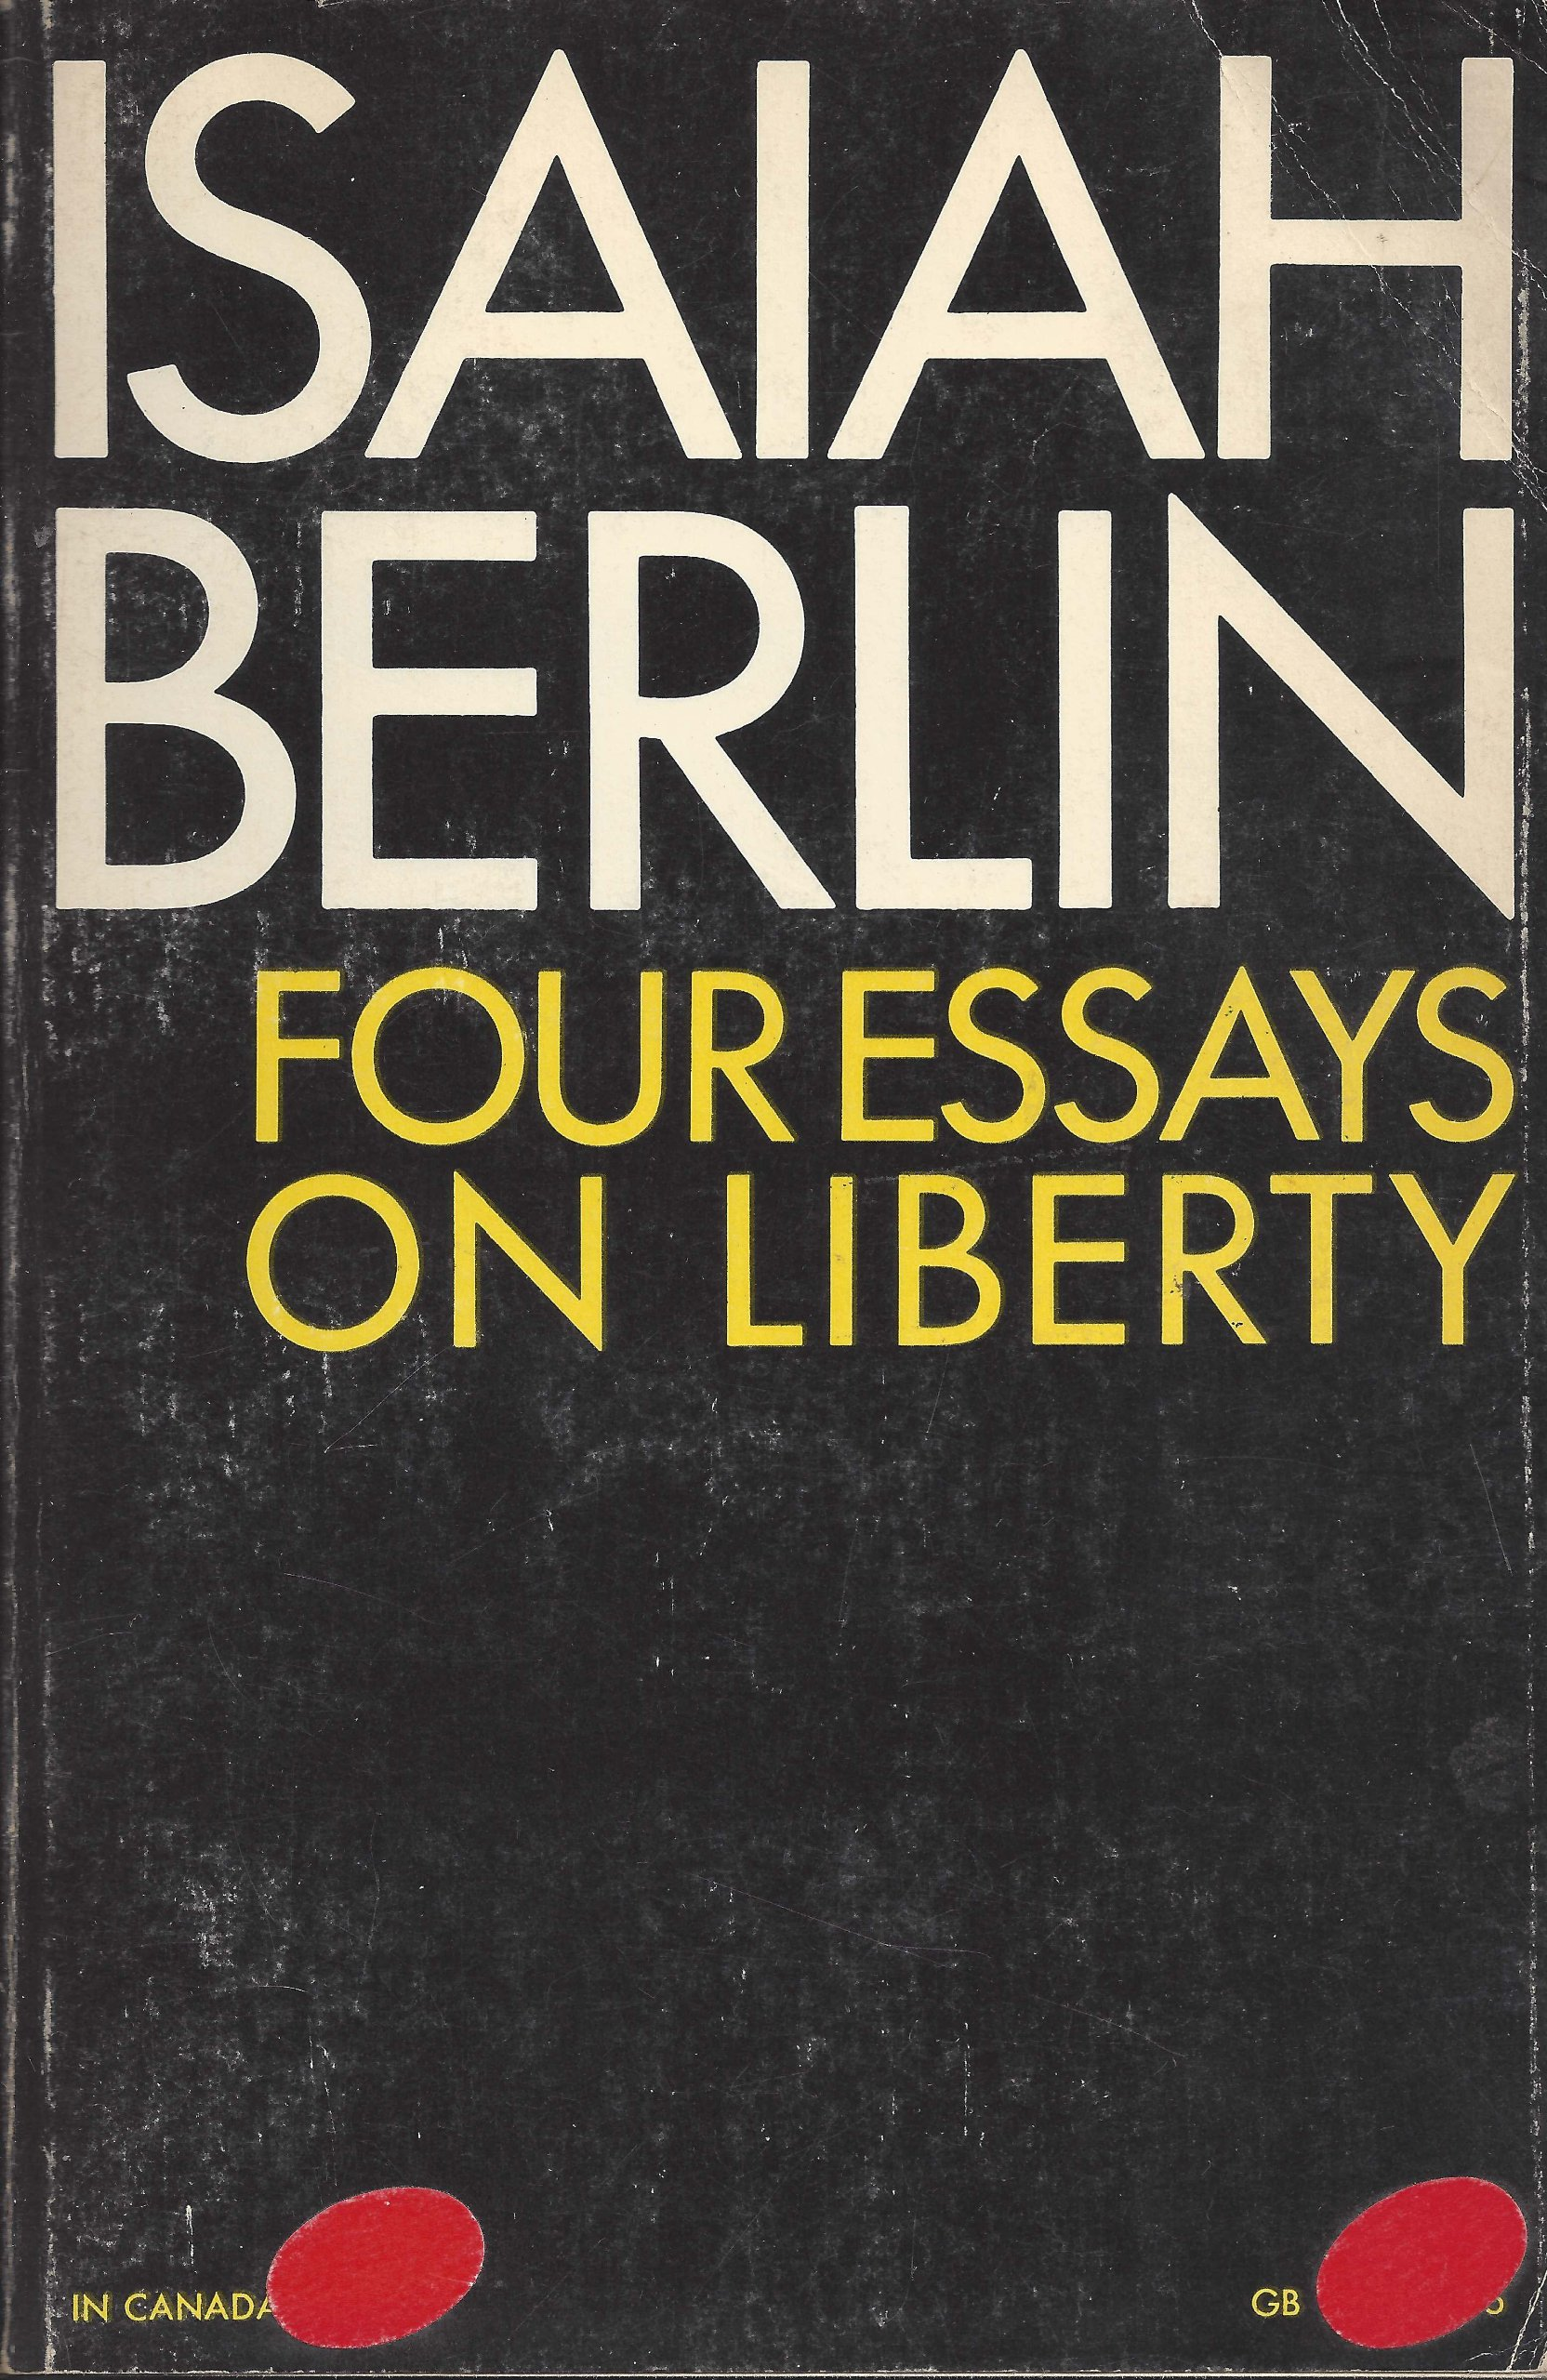 four essays on liberty isaiah berlin 9780195012422 amazon com four essays on liberty isaiah berlin 9780195012422 amazon com books